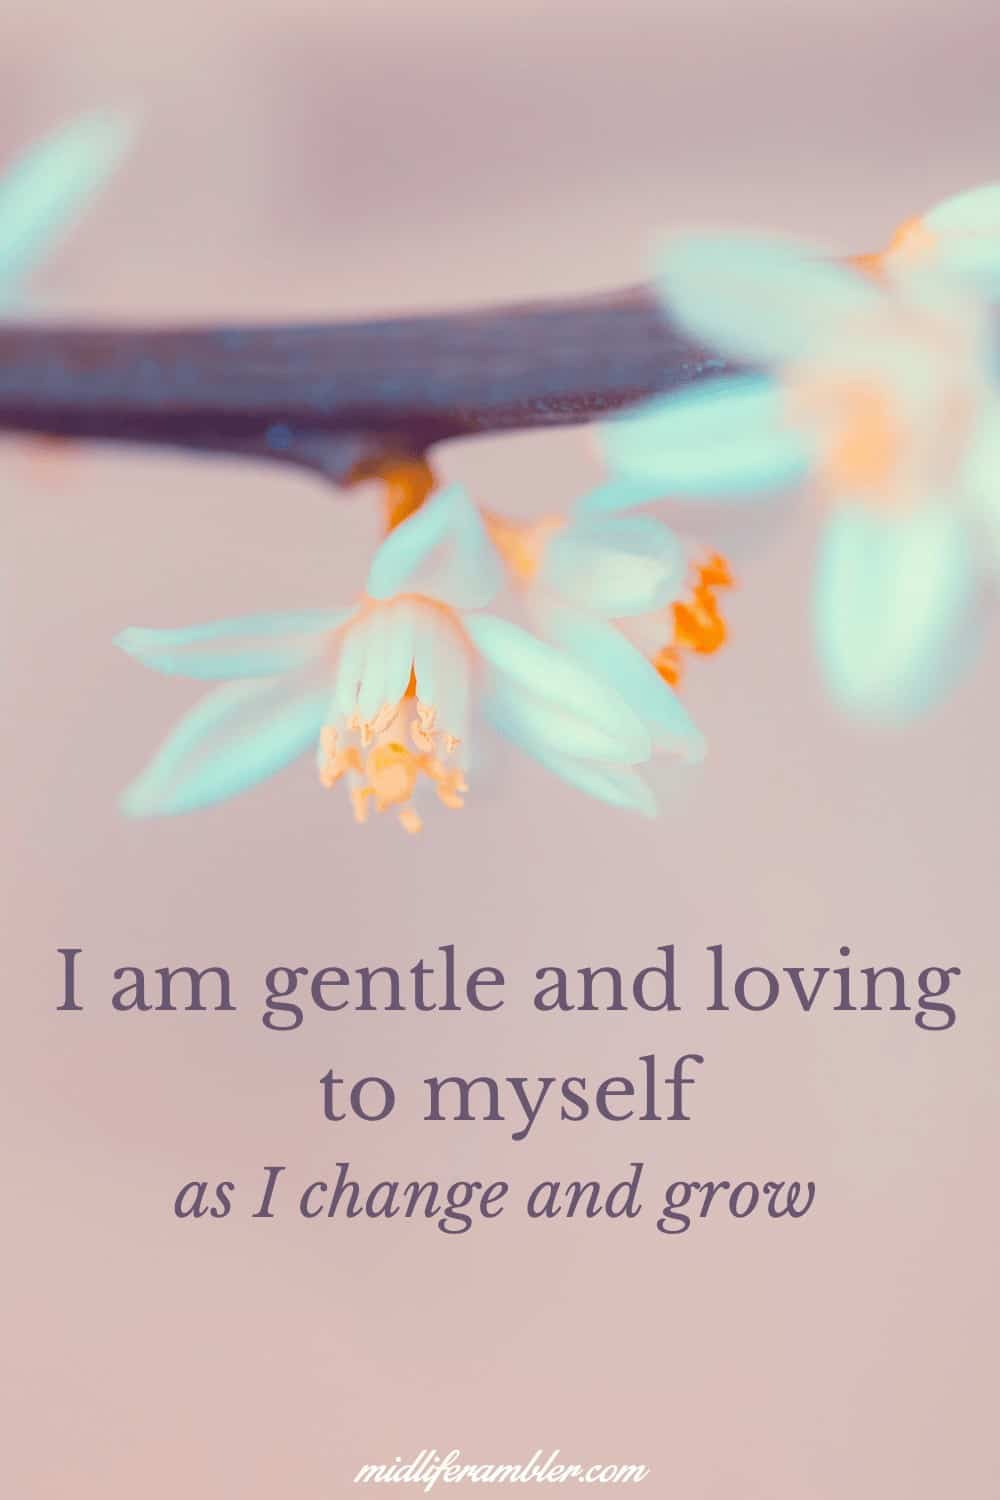 Affirmations for Self-Compassion - I am gentle and loving with myself as I change and grow.